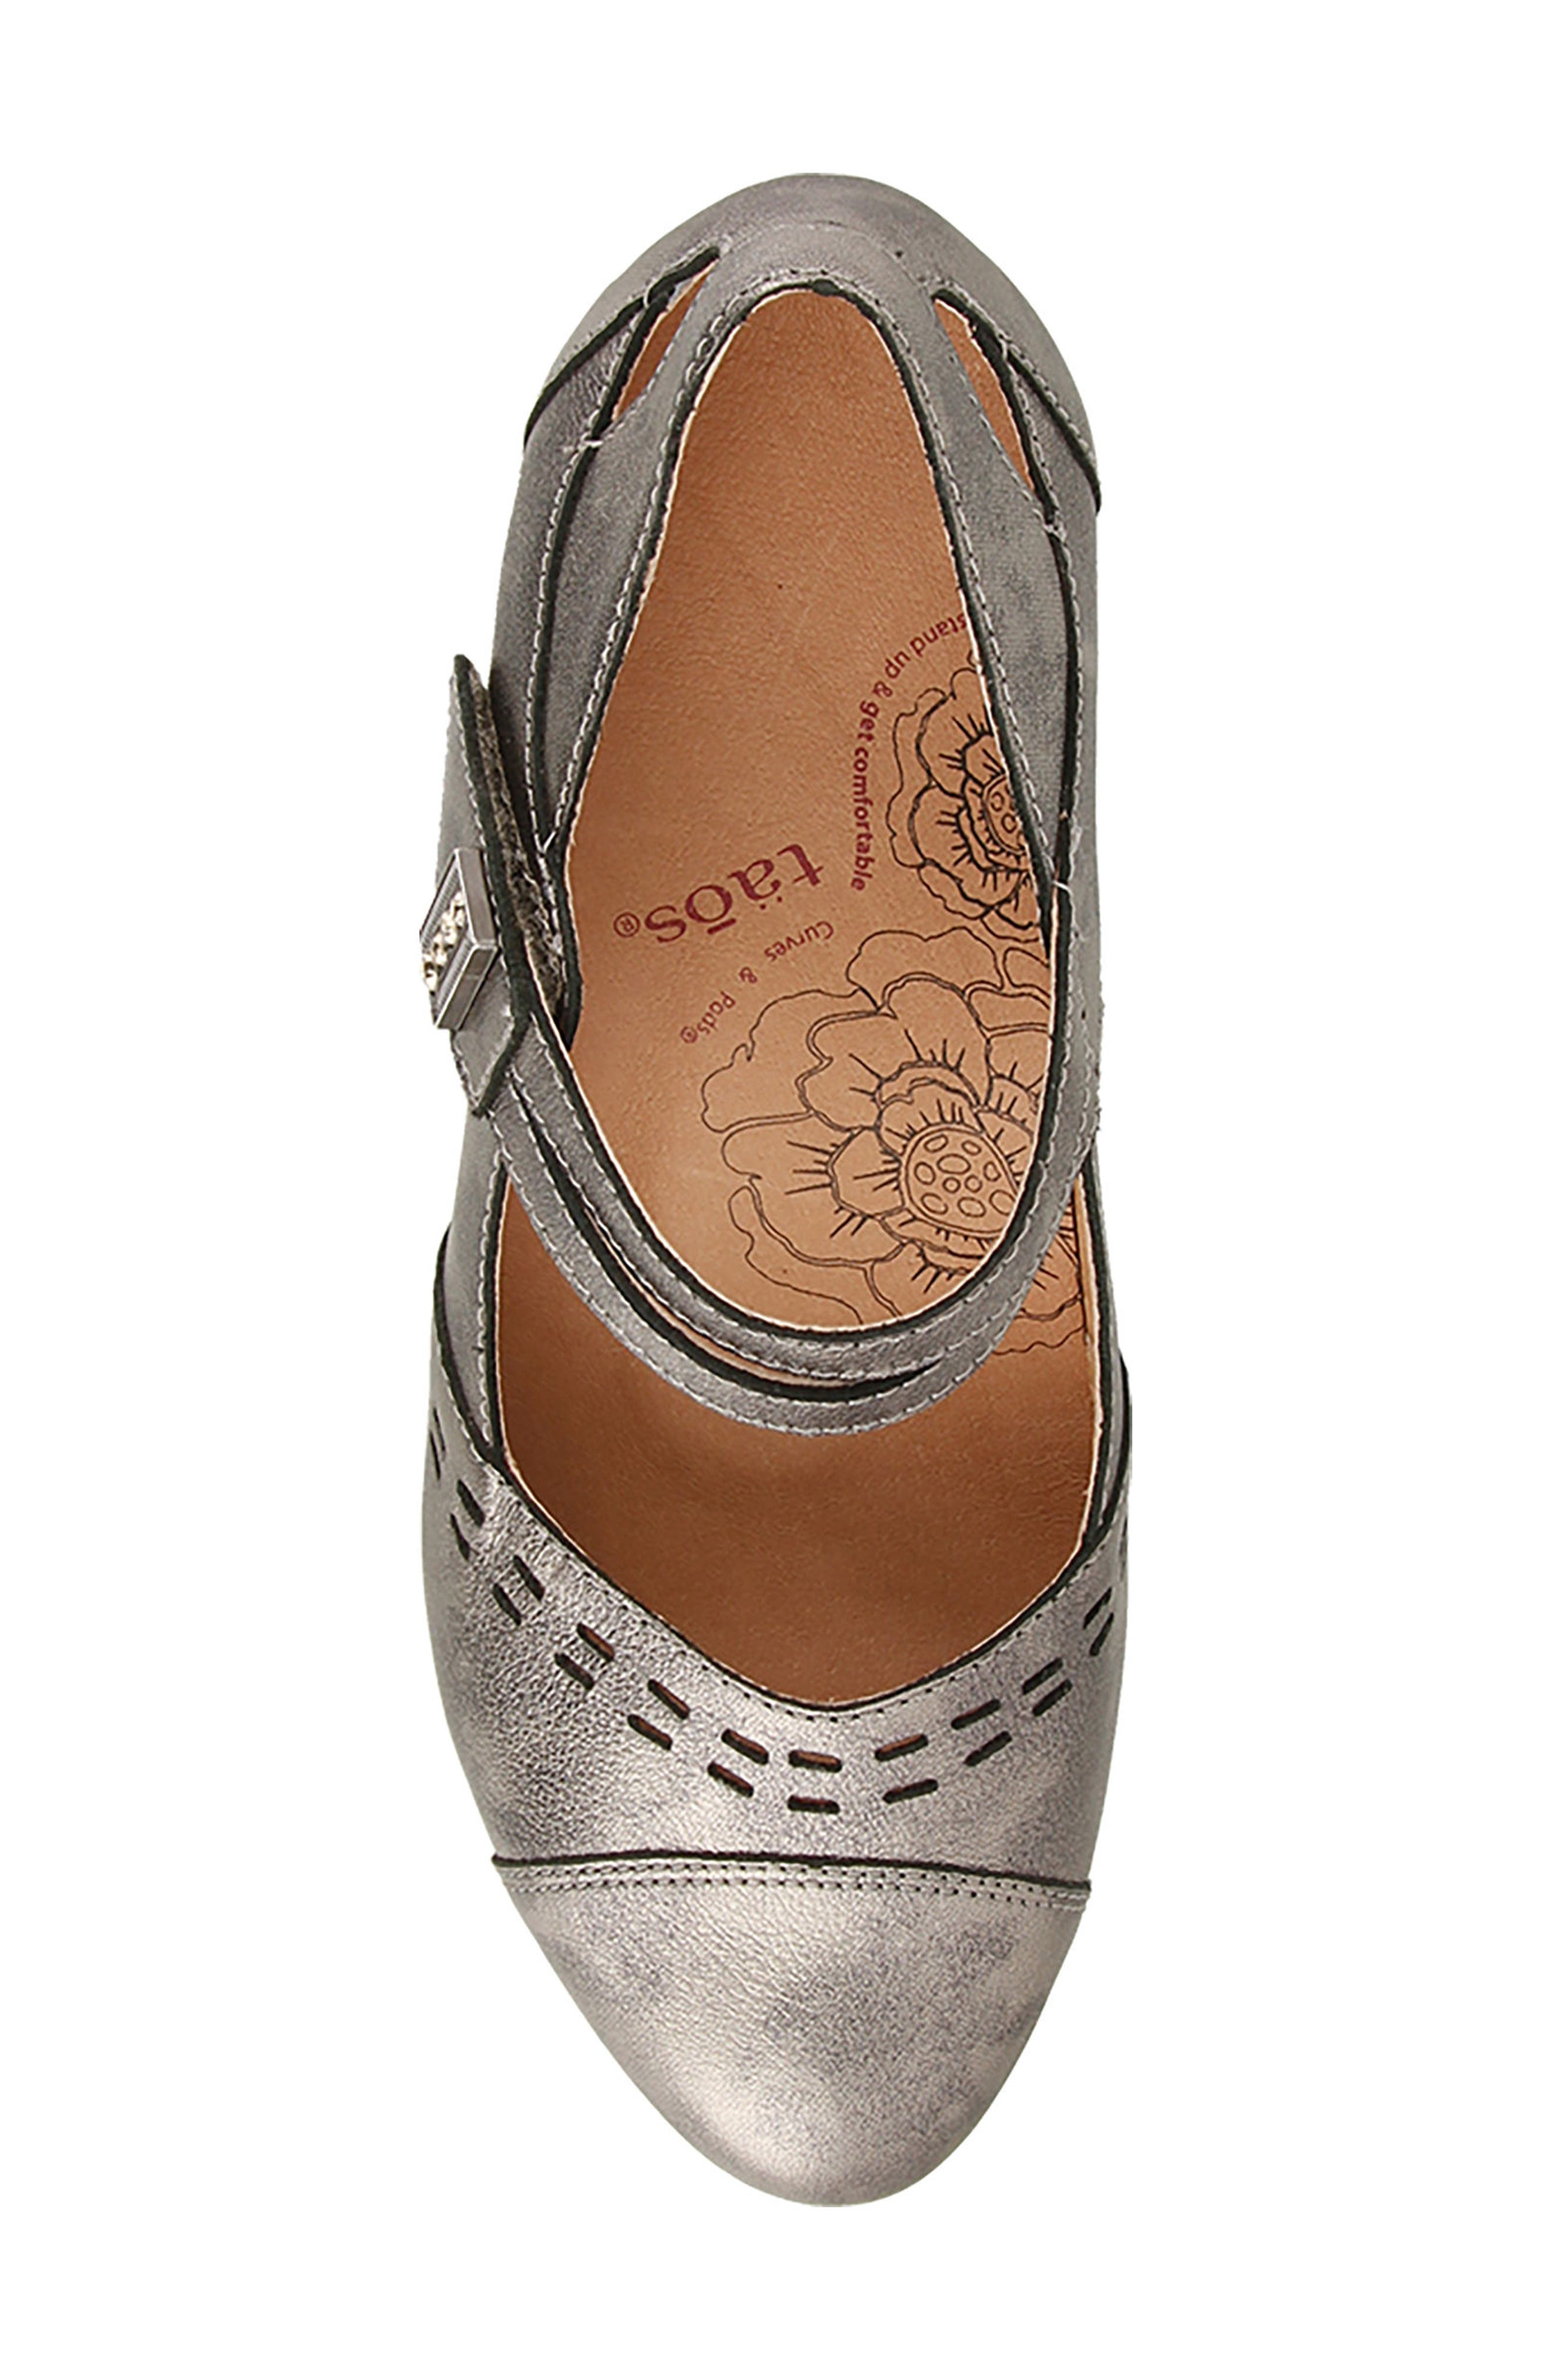 Stunner Laser Cutout Mary Jane Pump,                             Alternate thumbnail 5, color,                             Pewter Leather